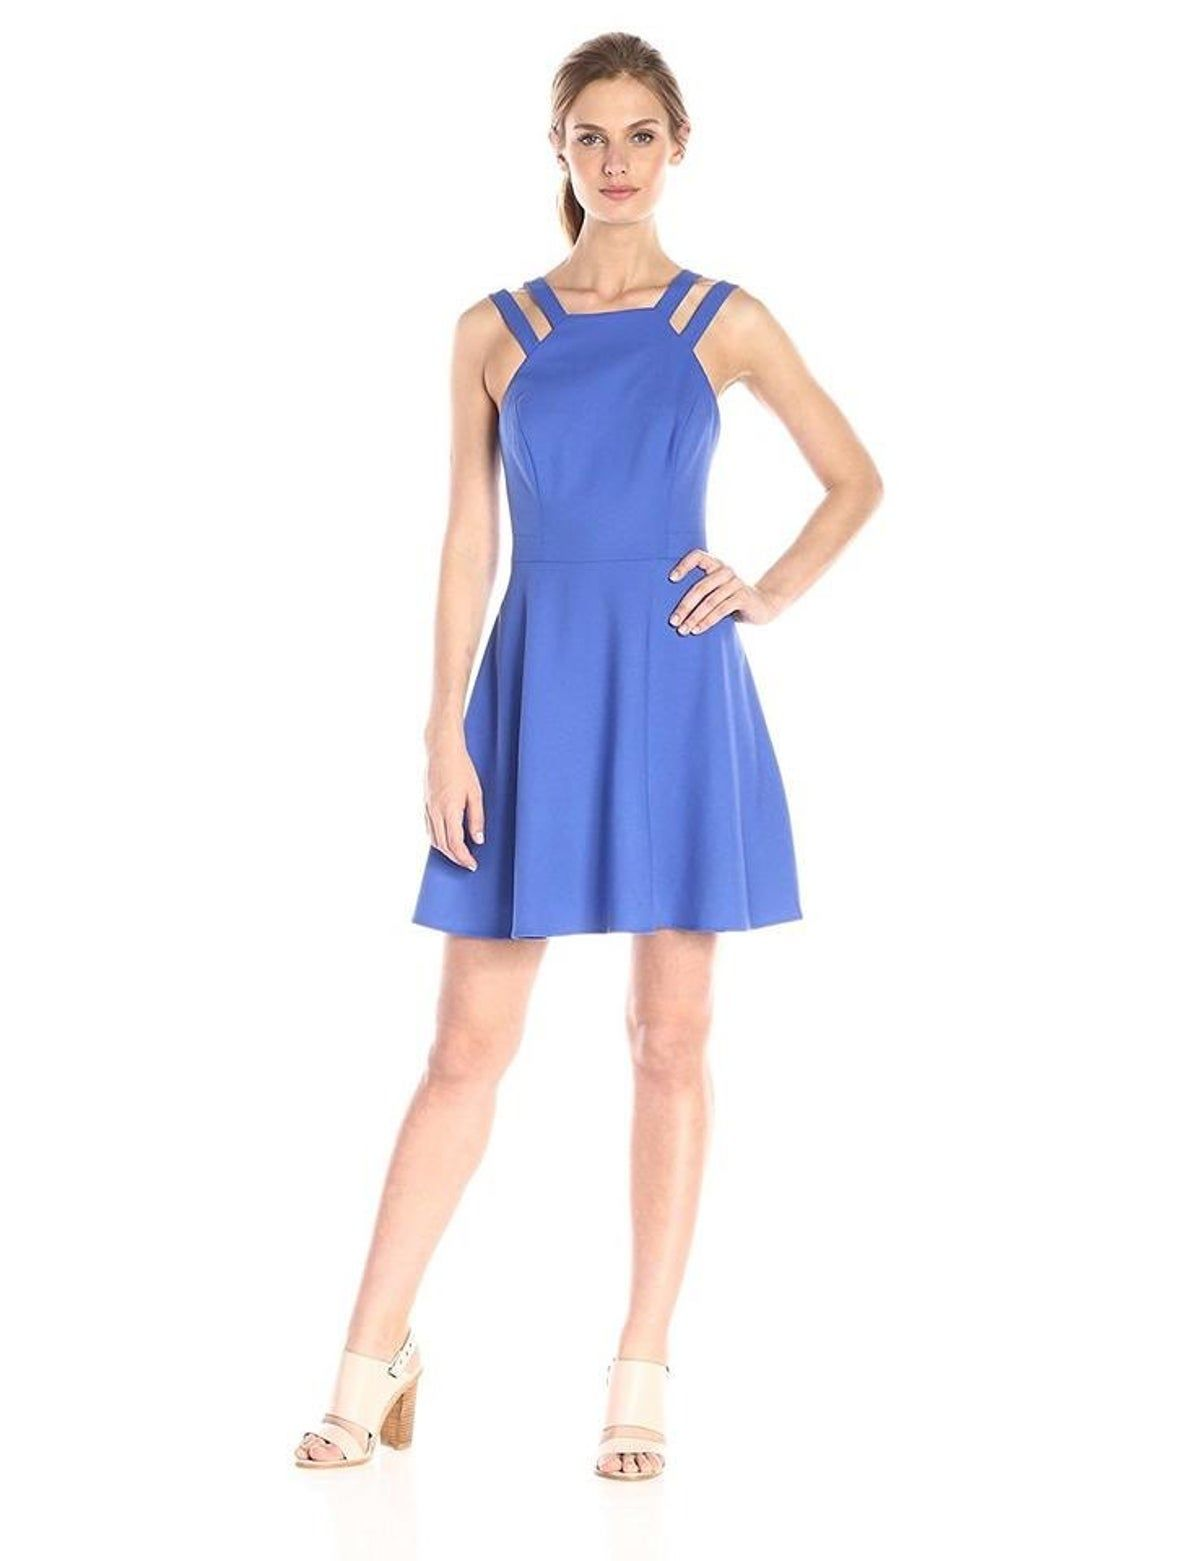 **Frosted Royal Blue Flare Dress**